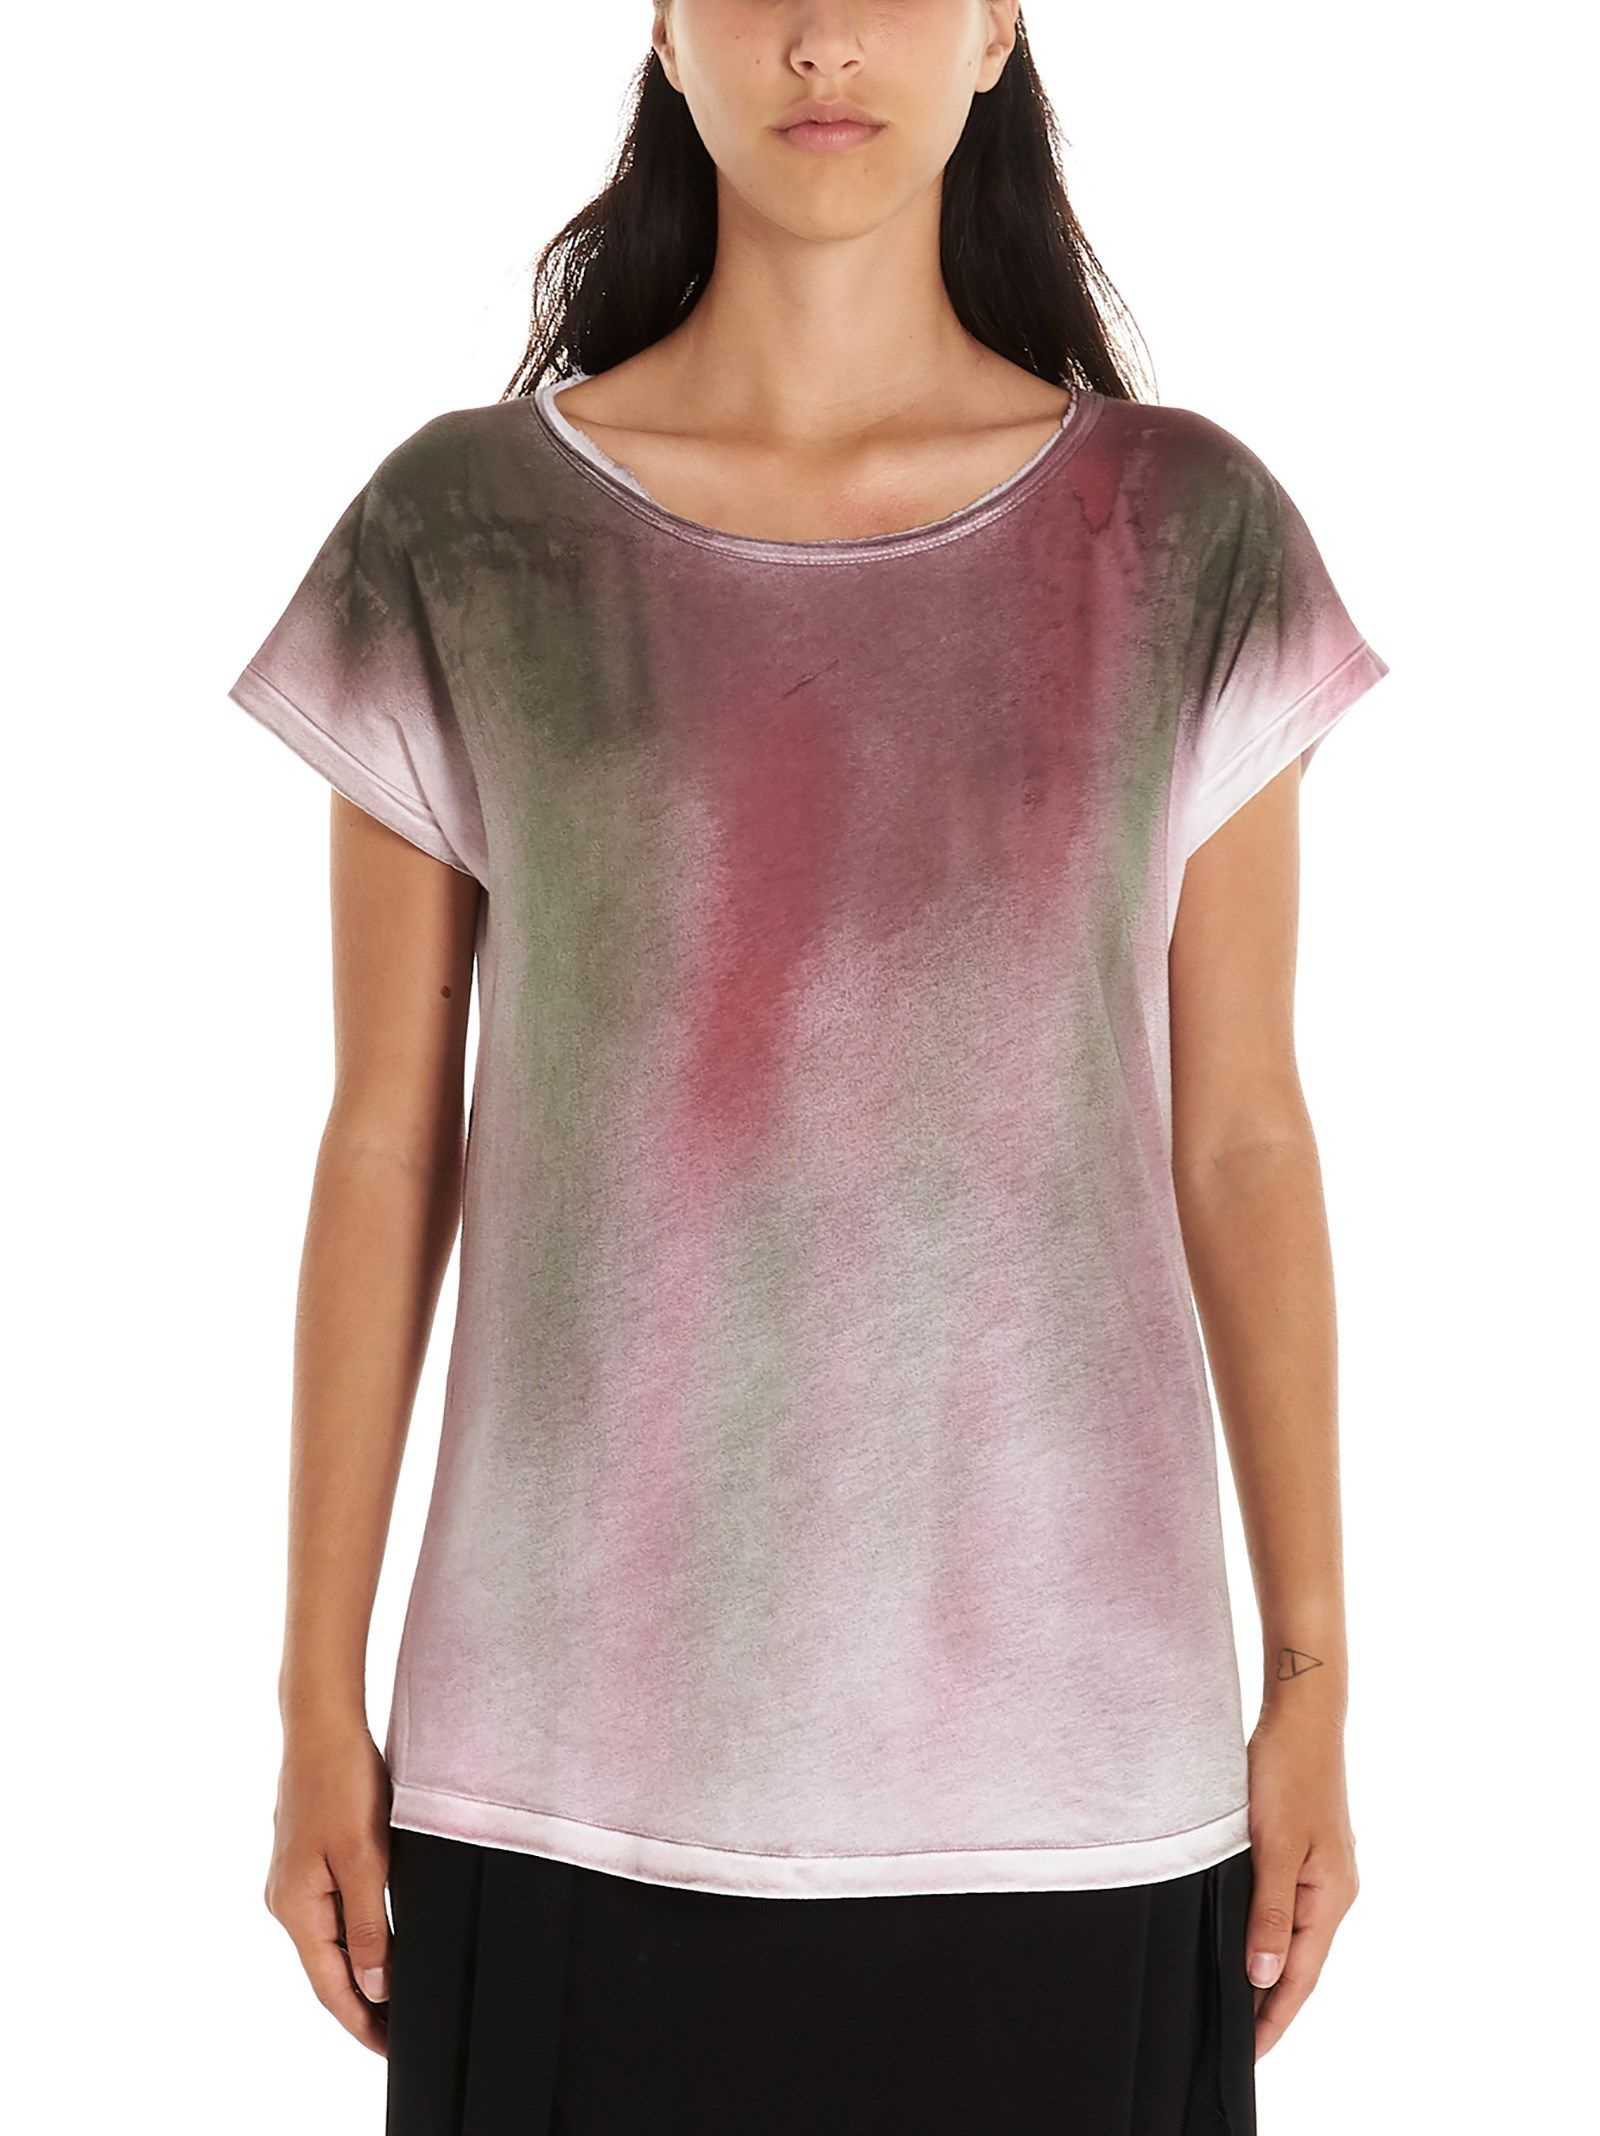 Ann Demeulemeester Hand Writing T-shirt In Multicolor